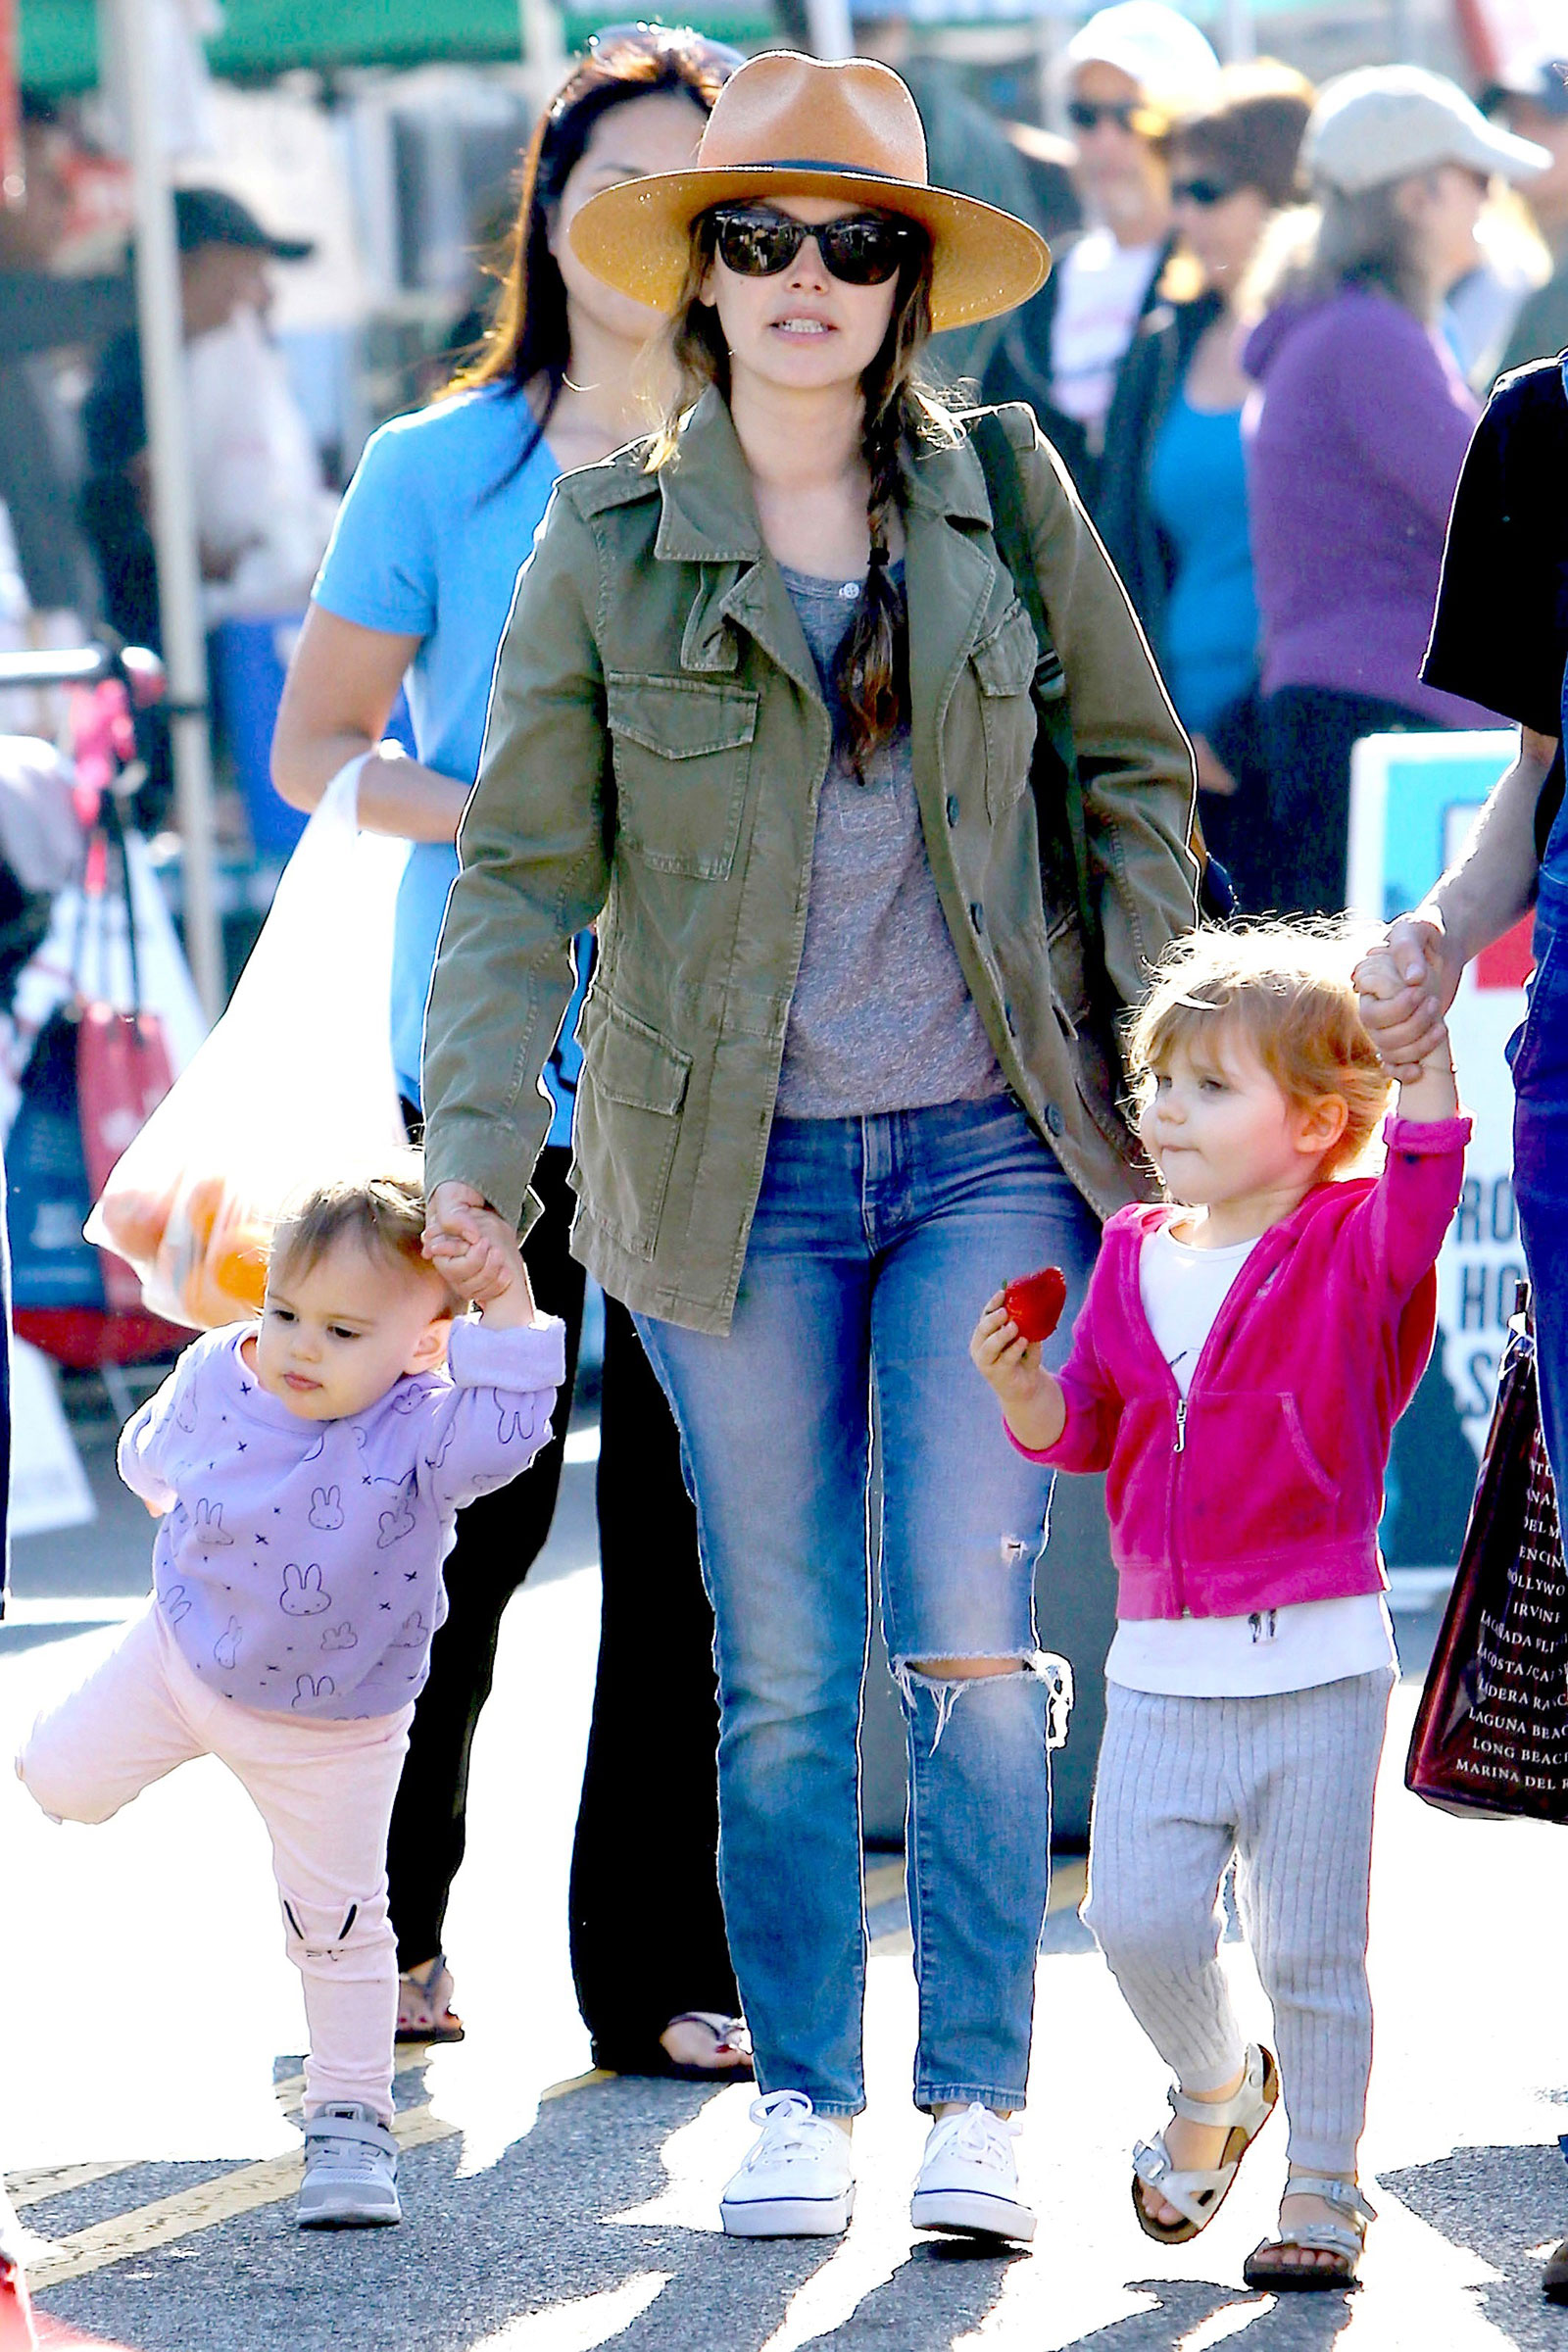 Rachel Bilson's casual mom style is cute and comfy, featuring a utility jacket, ripped jeans and white sneakers.